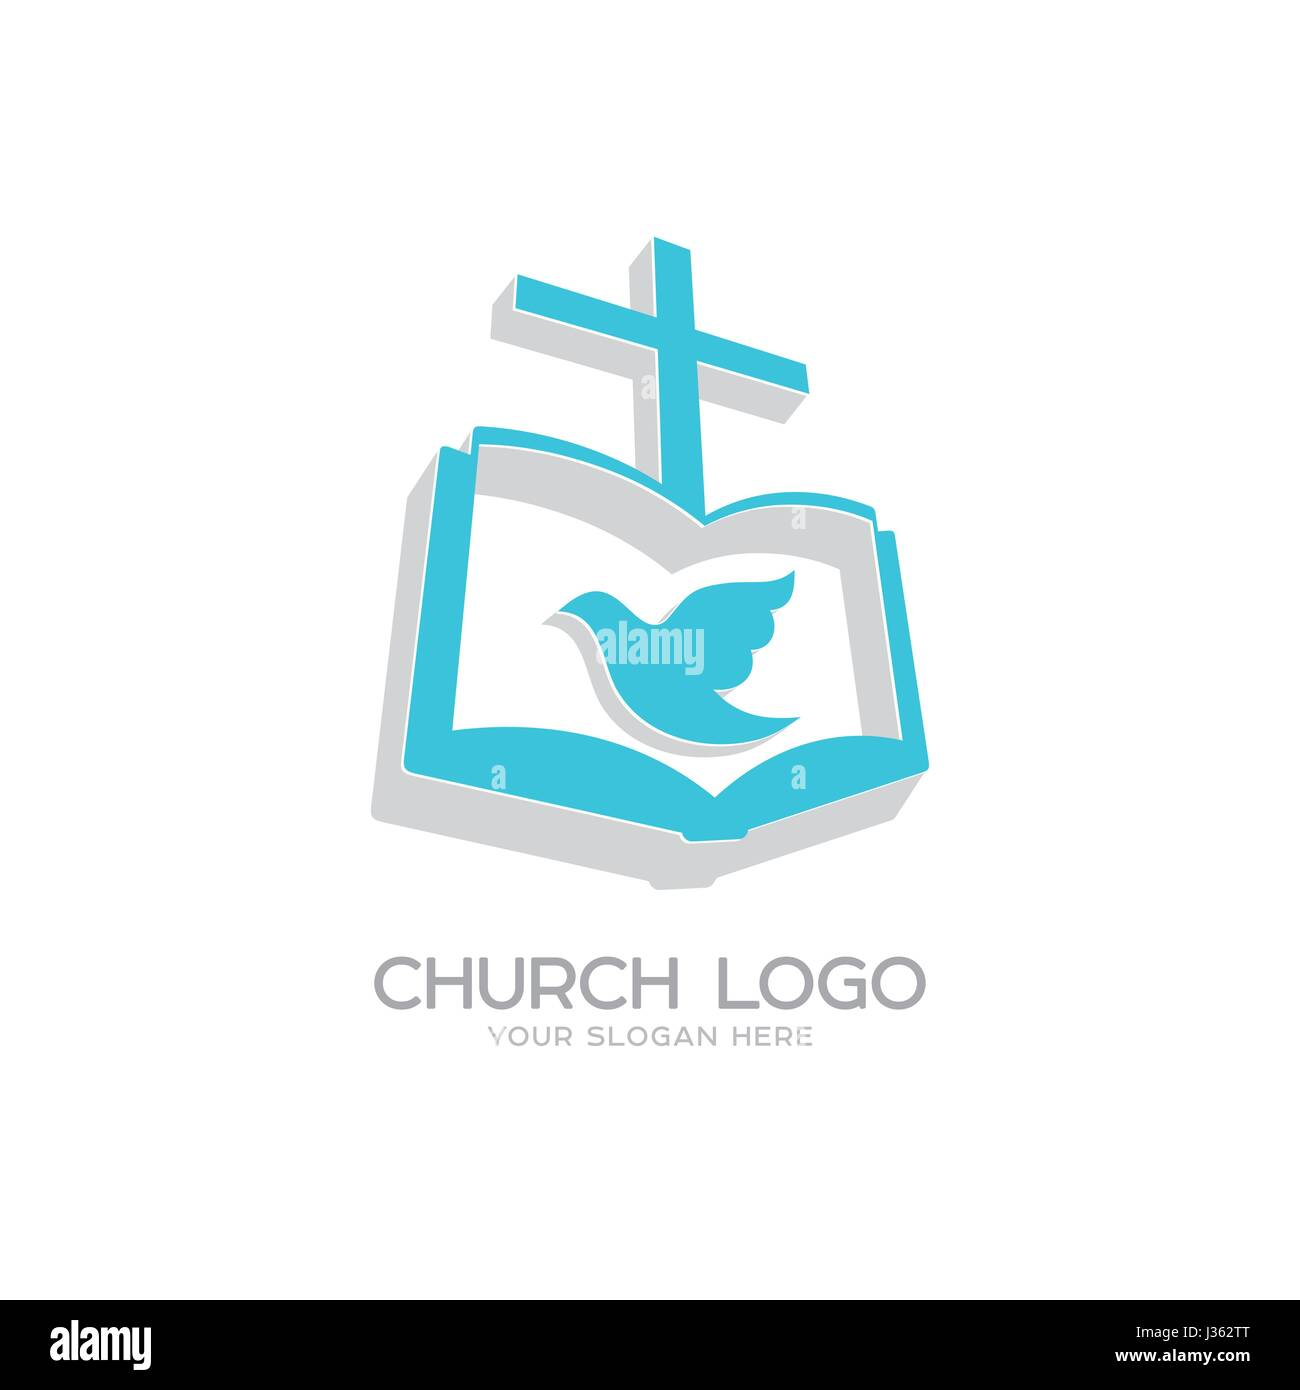 Church logo christian symbols the gospel the cross of jesus church logo christian symbols the gospel the cross of jesus christ and the dove the holy spirit altavistaventures Choice Image